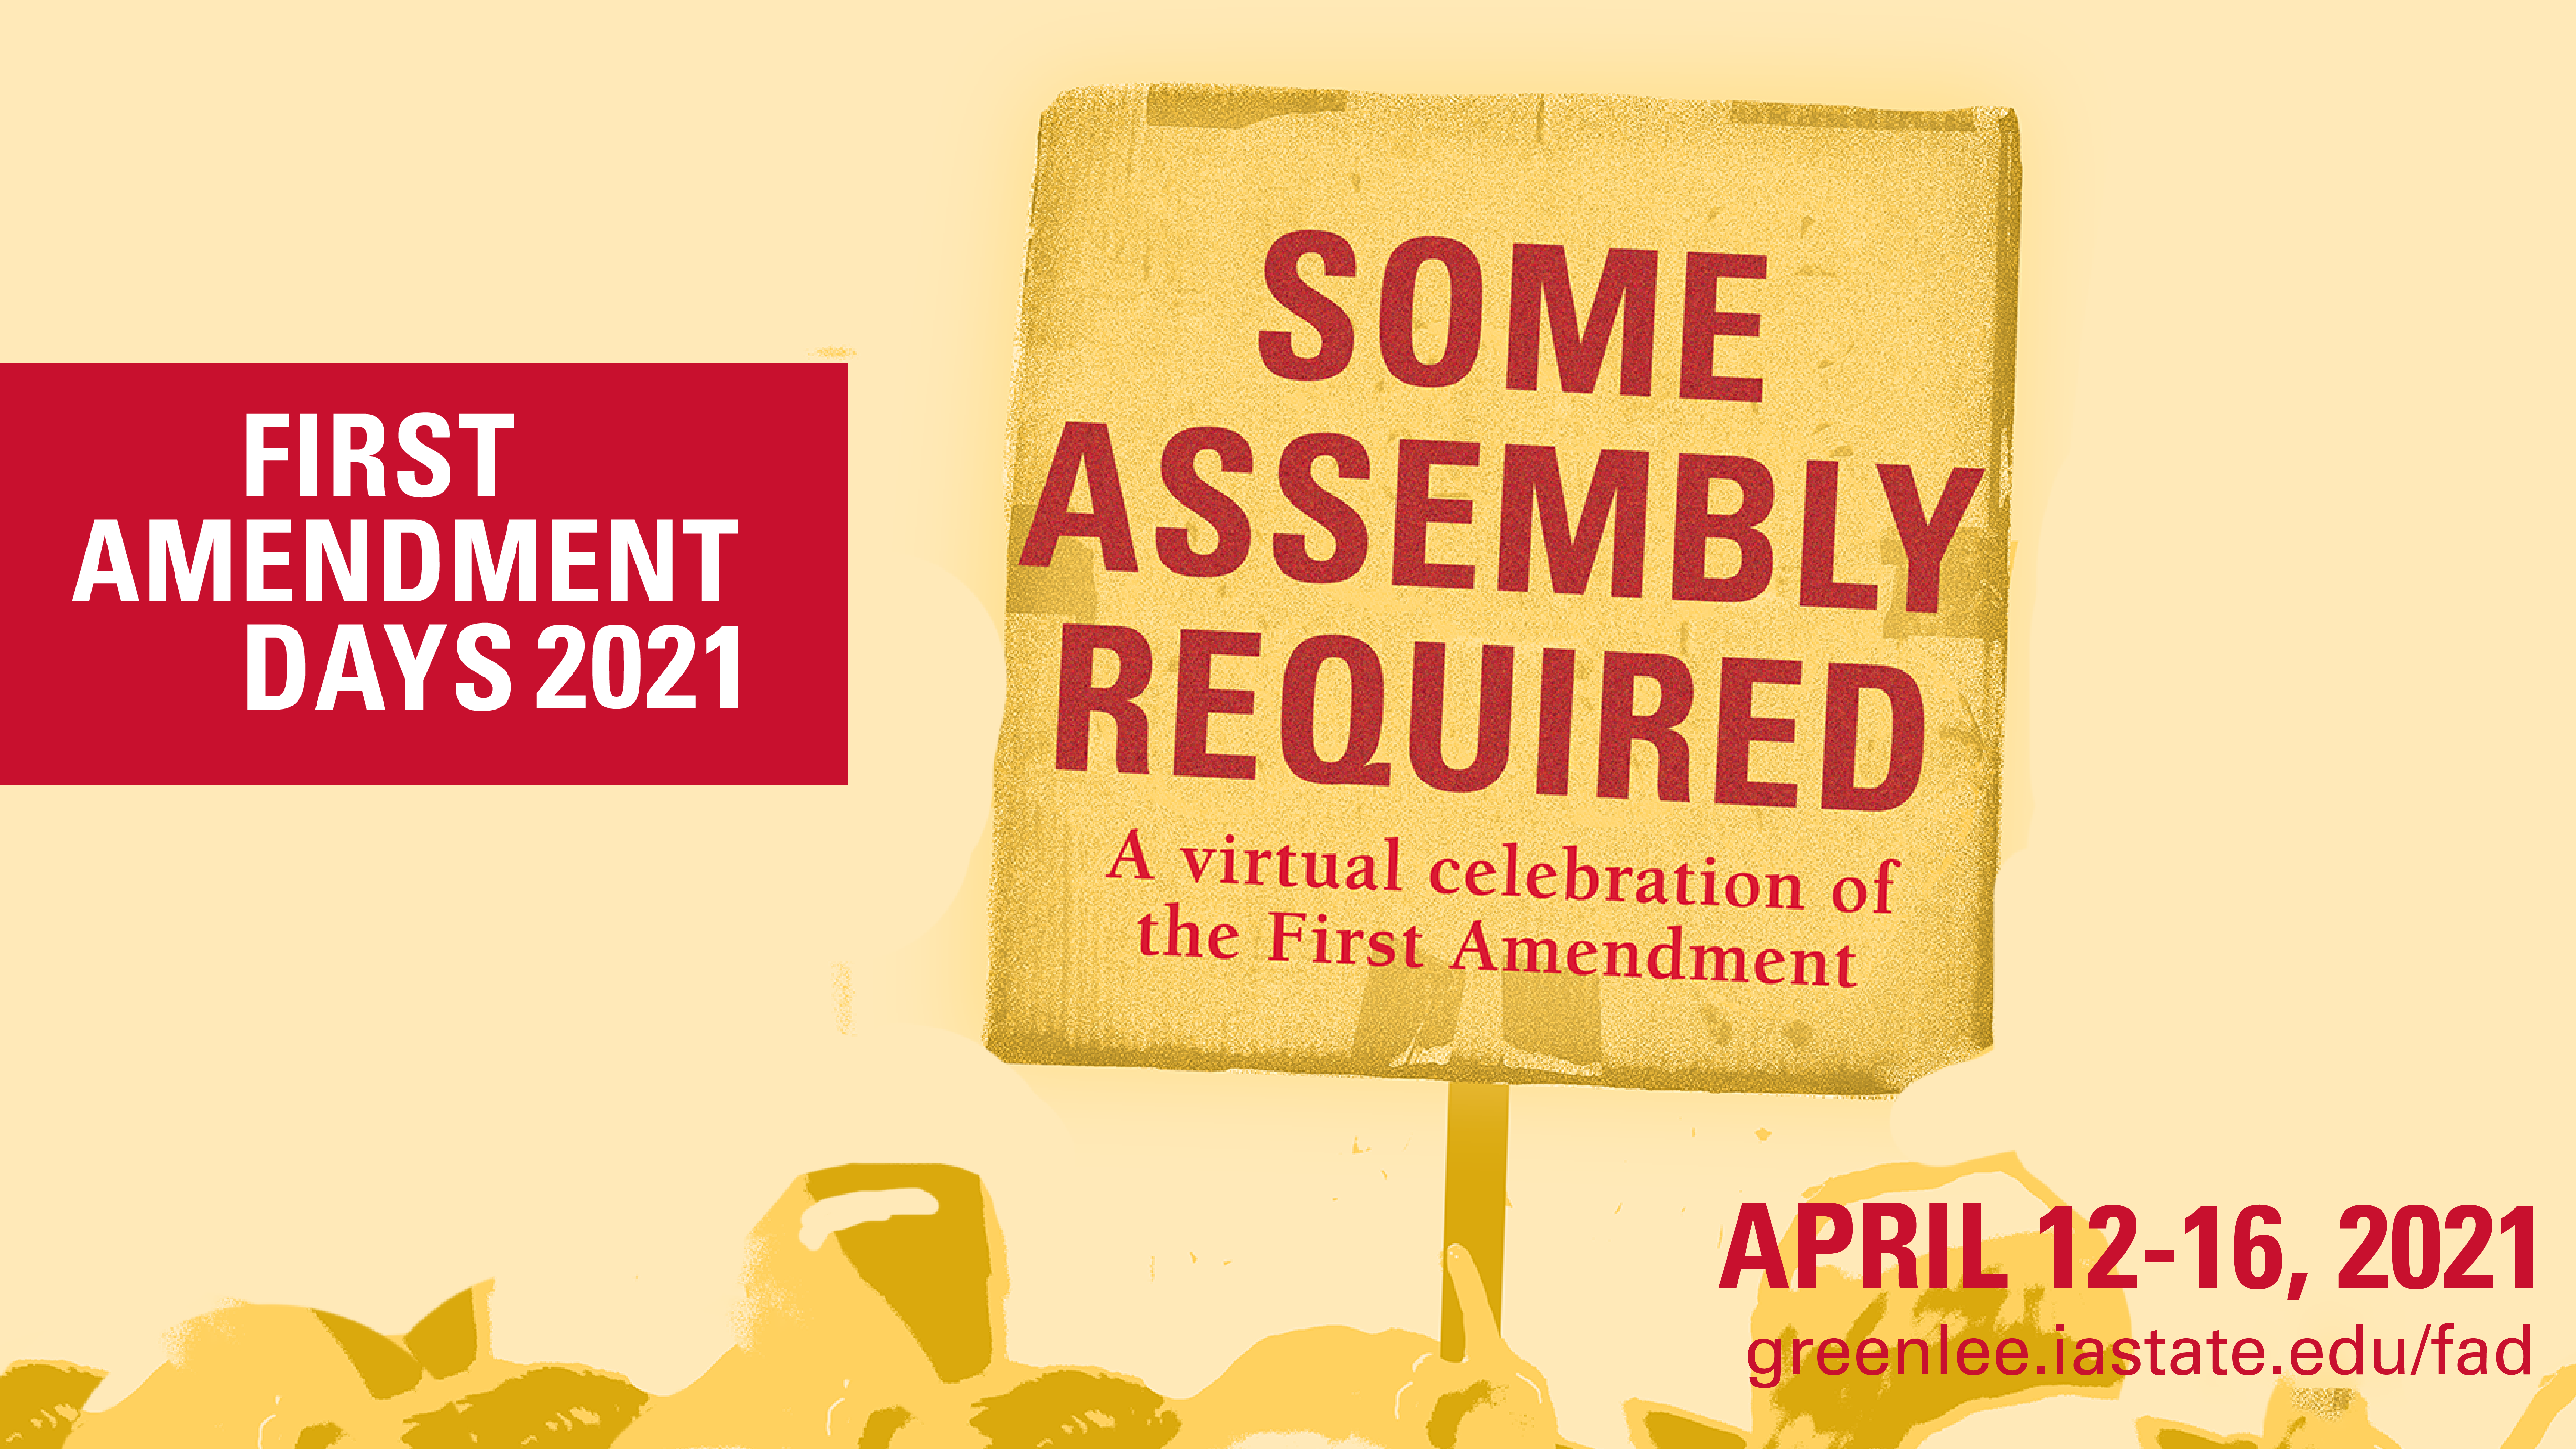 First Amendment Days Some Assembly Required graphic